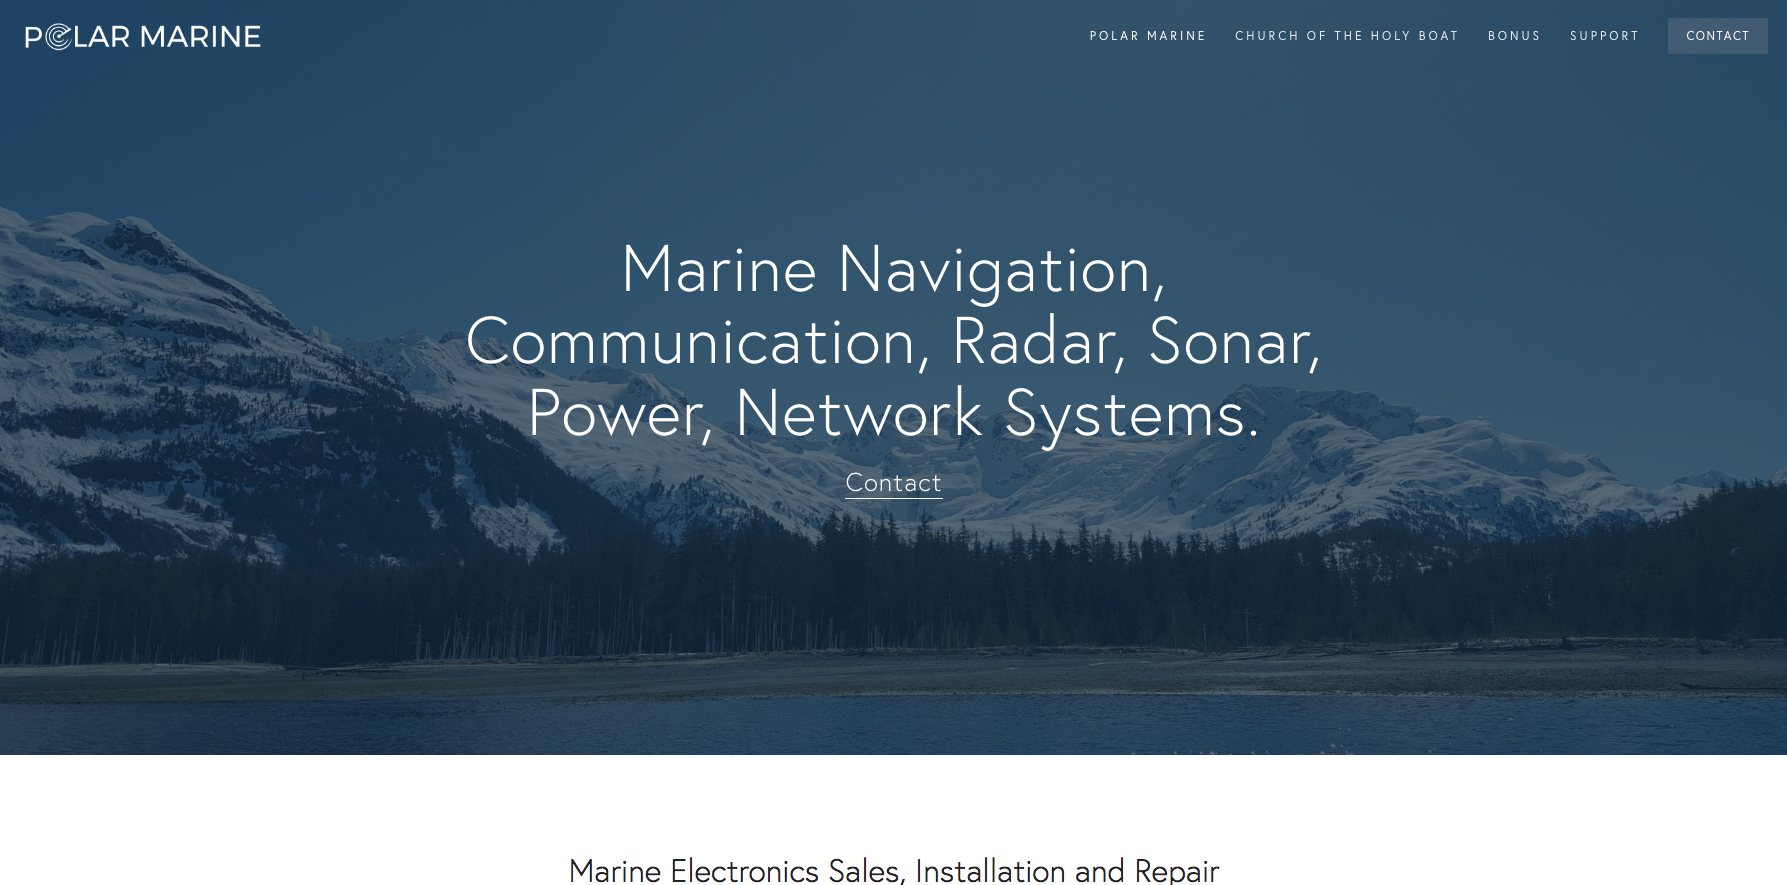 Polar Marine - Renovated a website to allow the most important information to be showcased for future customers